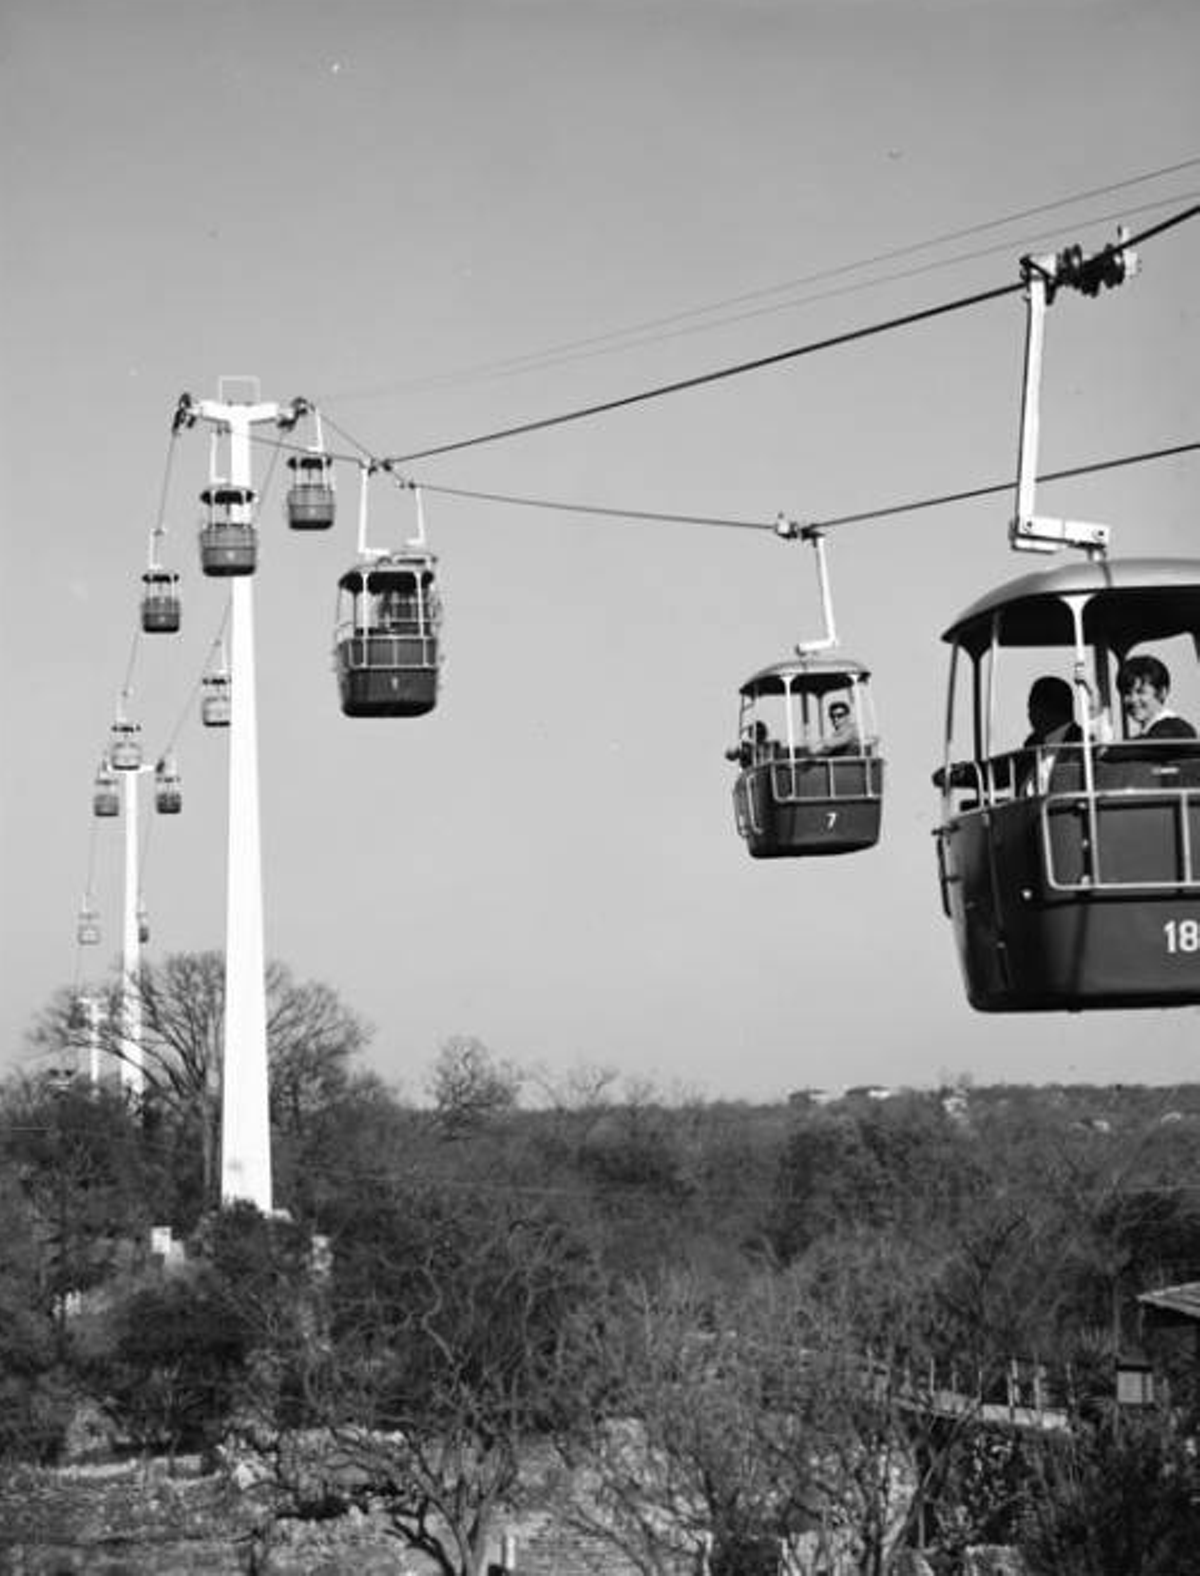 fc7e0252c0b San Antonians first got to enjoy the well-loved Sky Ride at Brackenridge  Park when the attraction opened on November 14